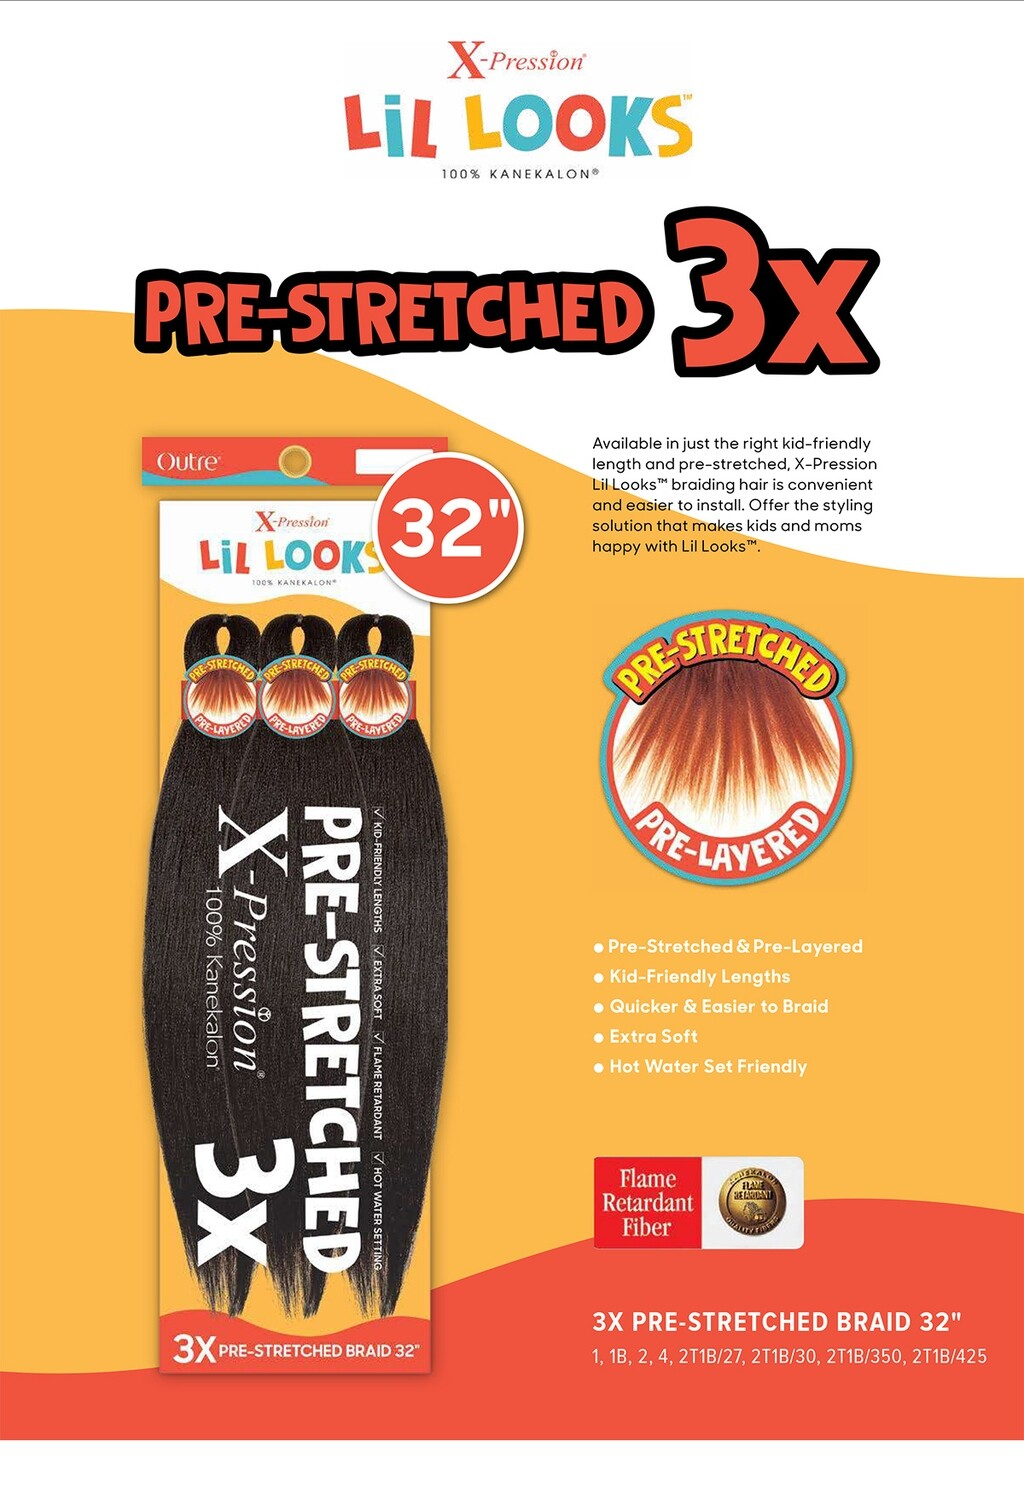 """OUTRE X-PRESSIONS LIL LOOKS 3X PRE-STRETCHED BRAID 32"""" (KIDS)"""